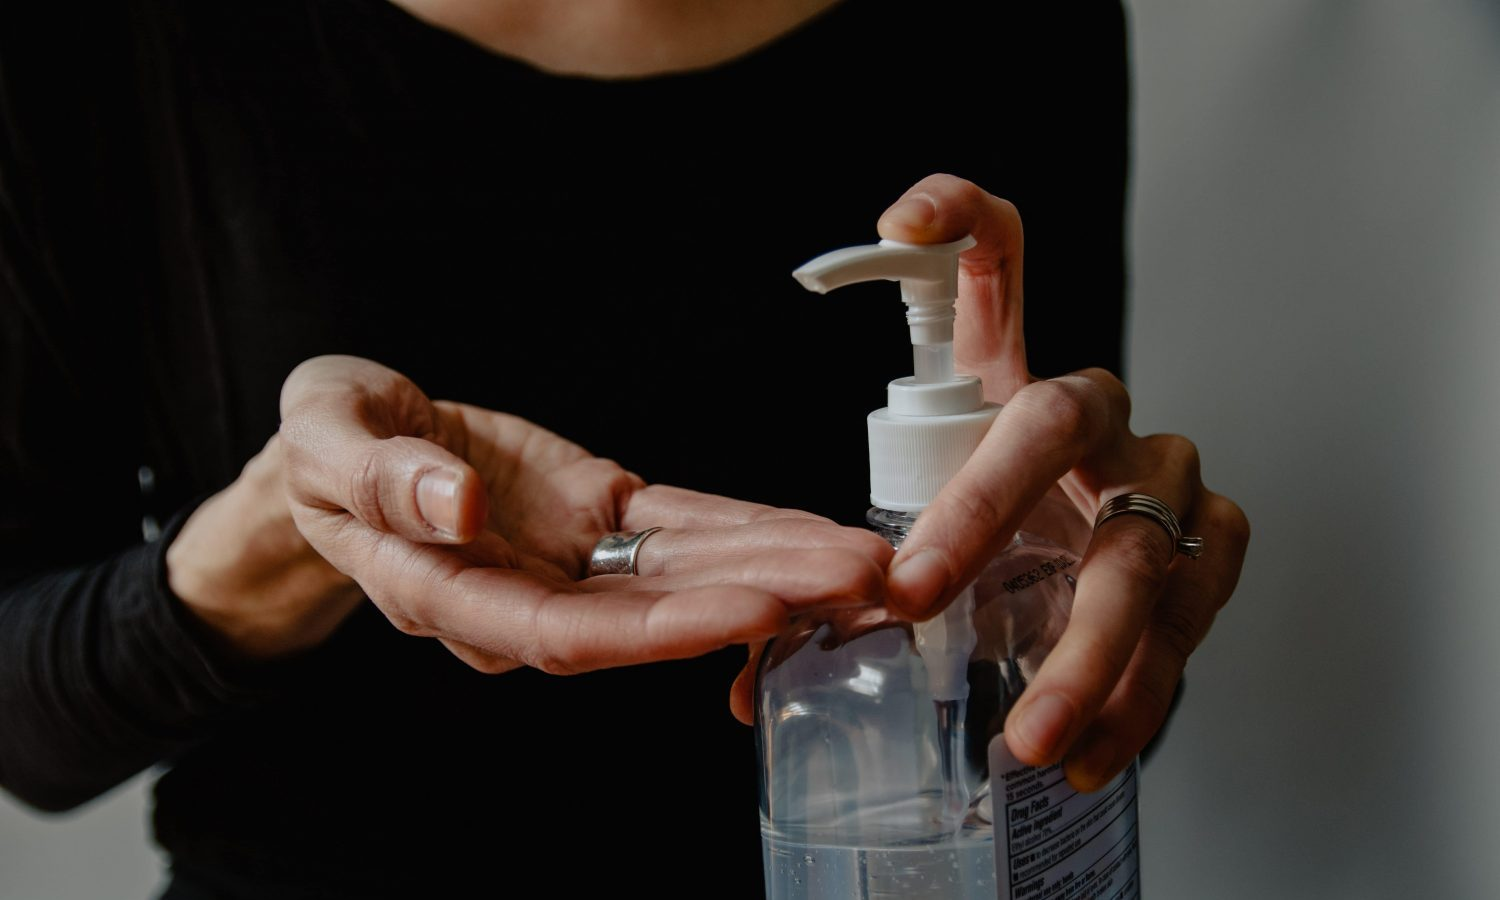 5 Common Hand Sanitizer Mistakes You Should Avoid